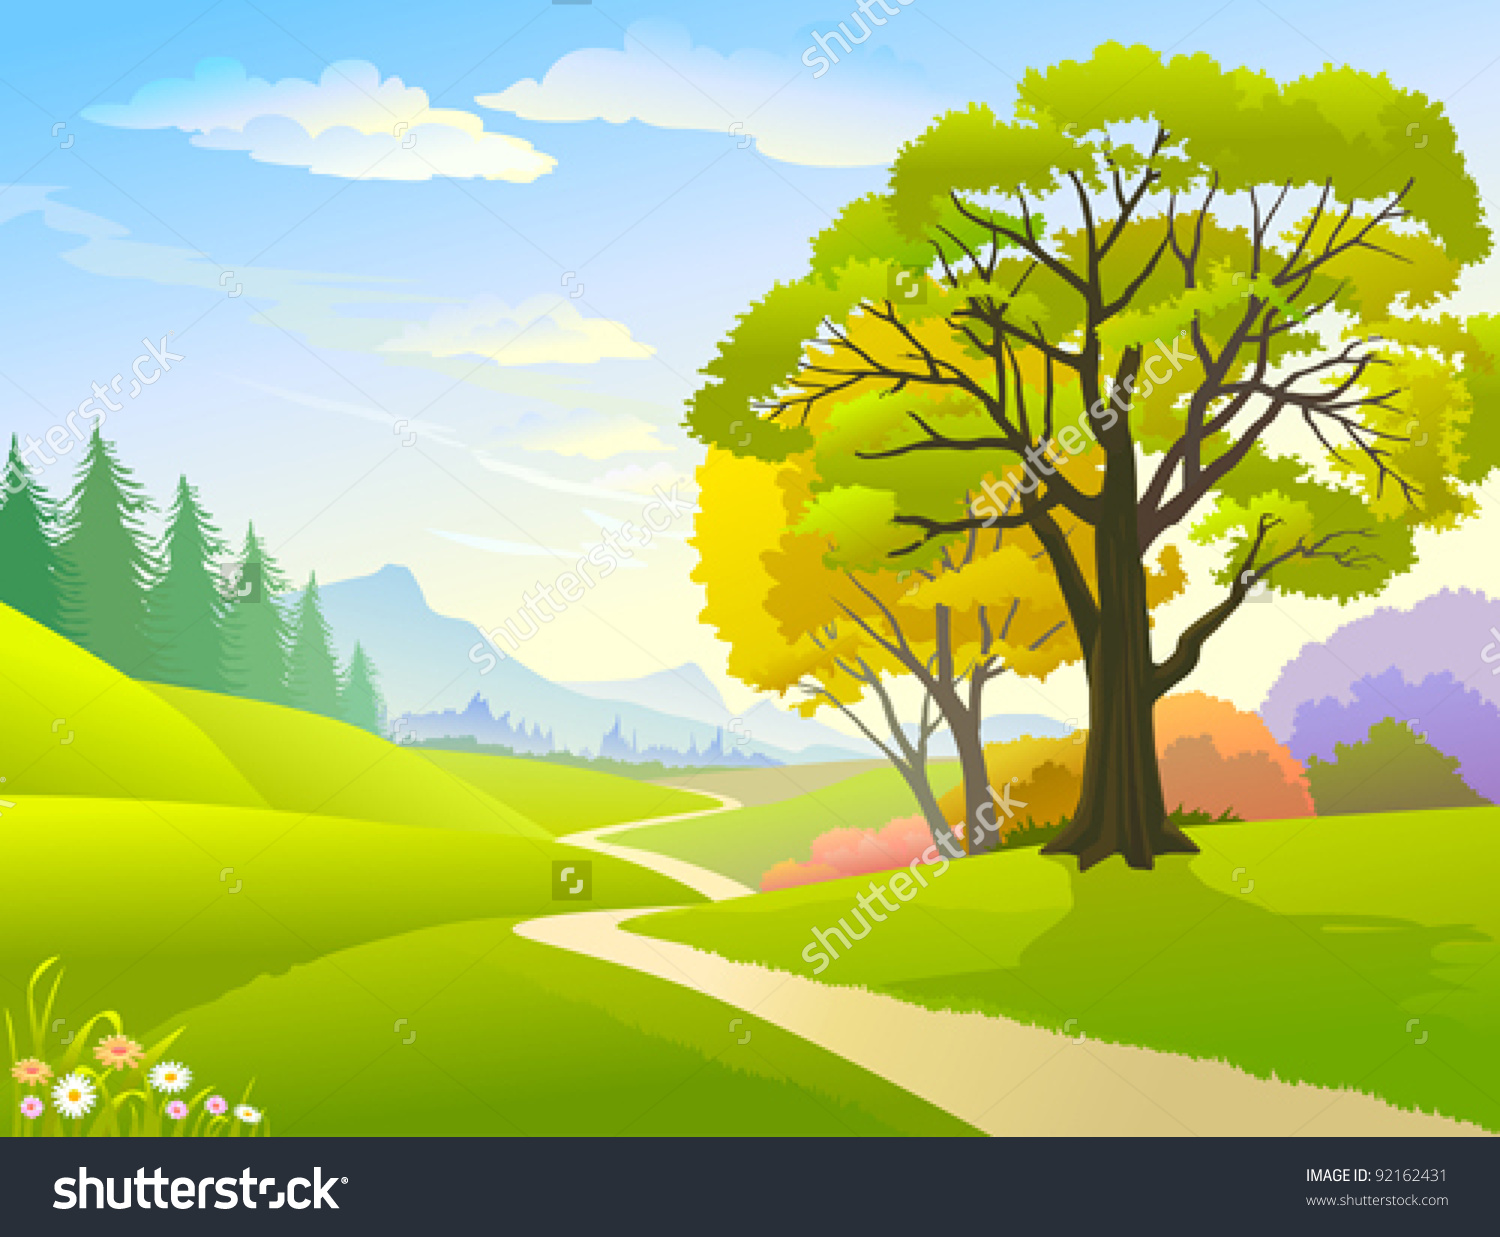 Countyside clipart gravel road Countryside Countryside Download clipart clipart